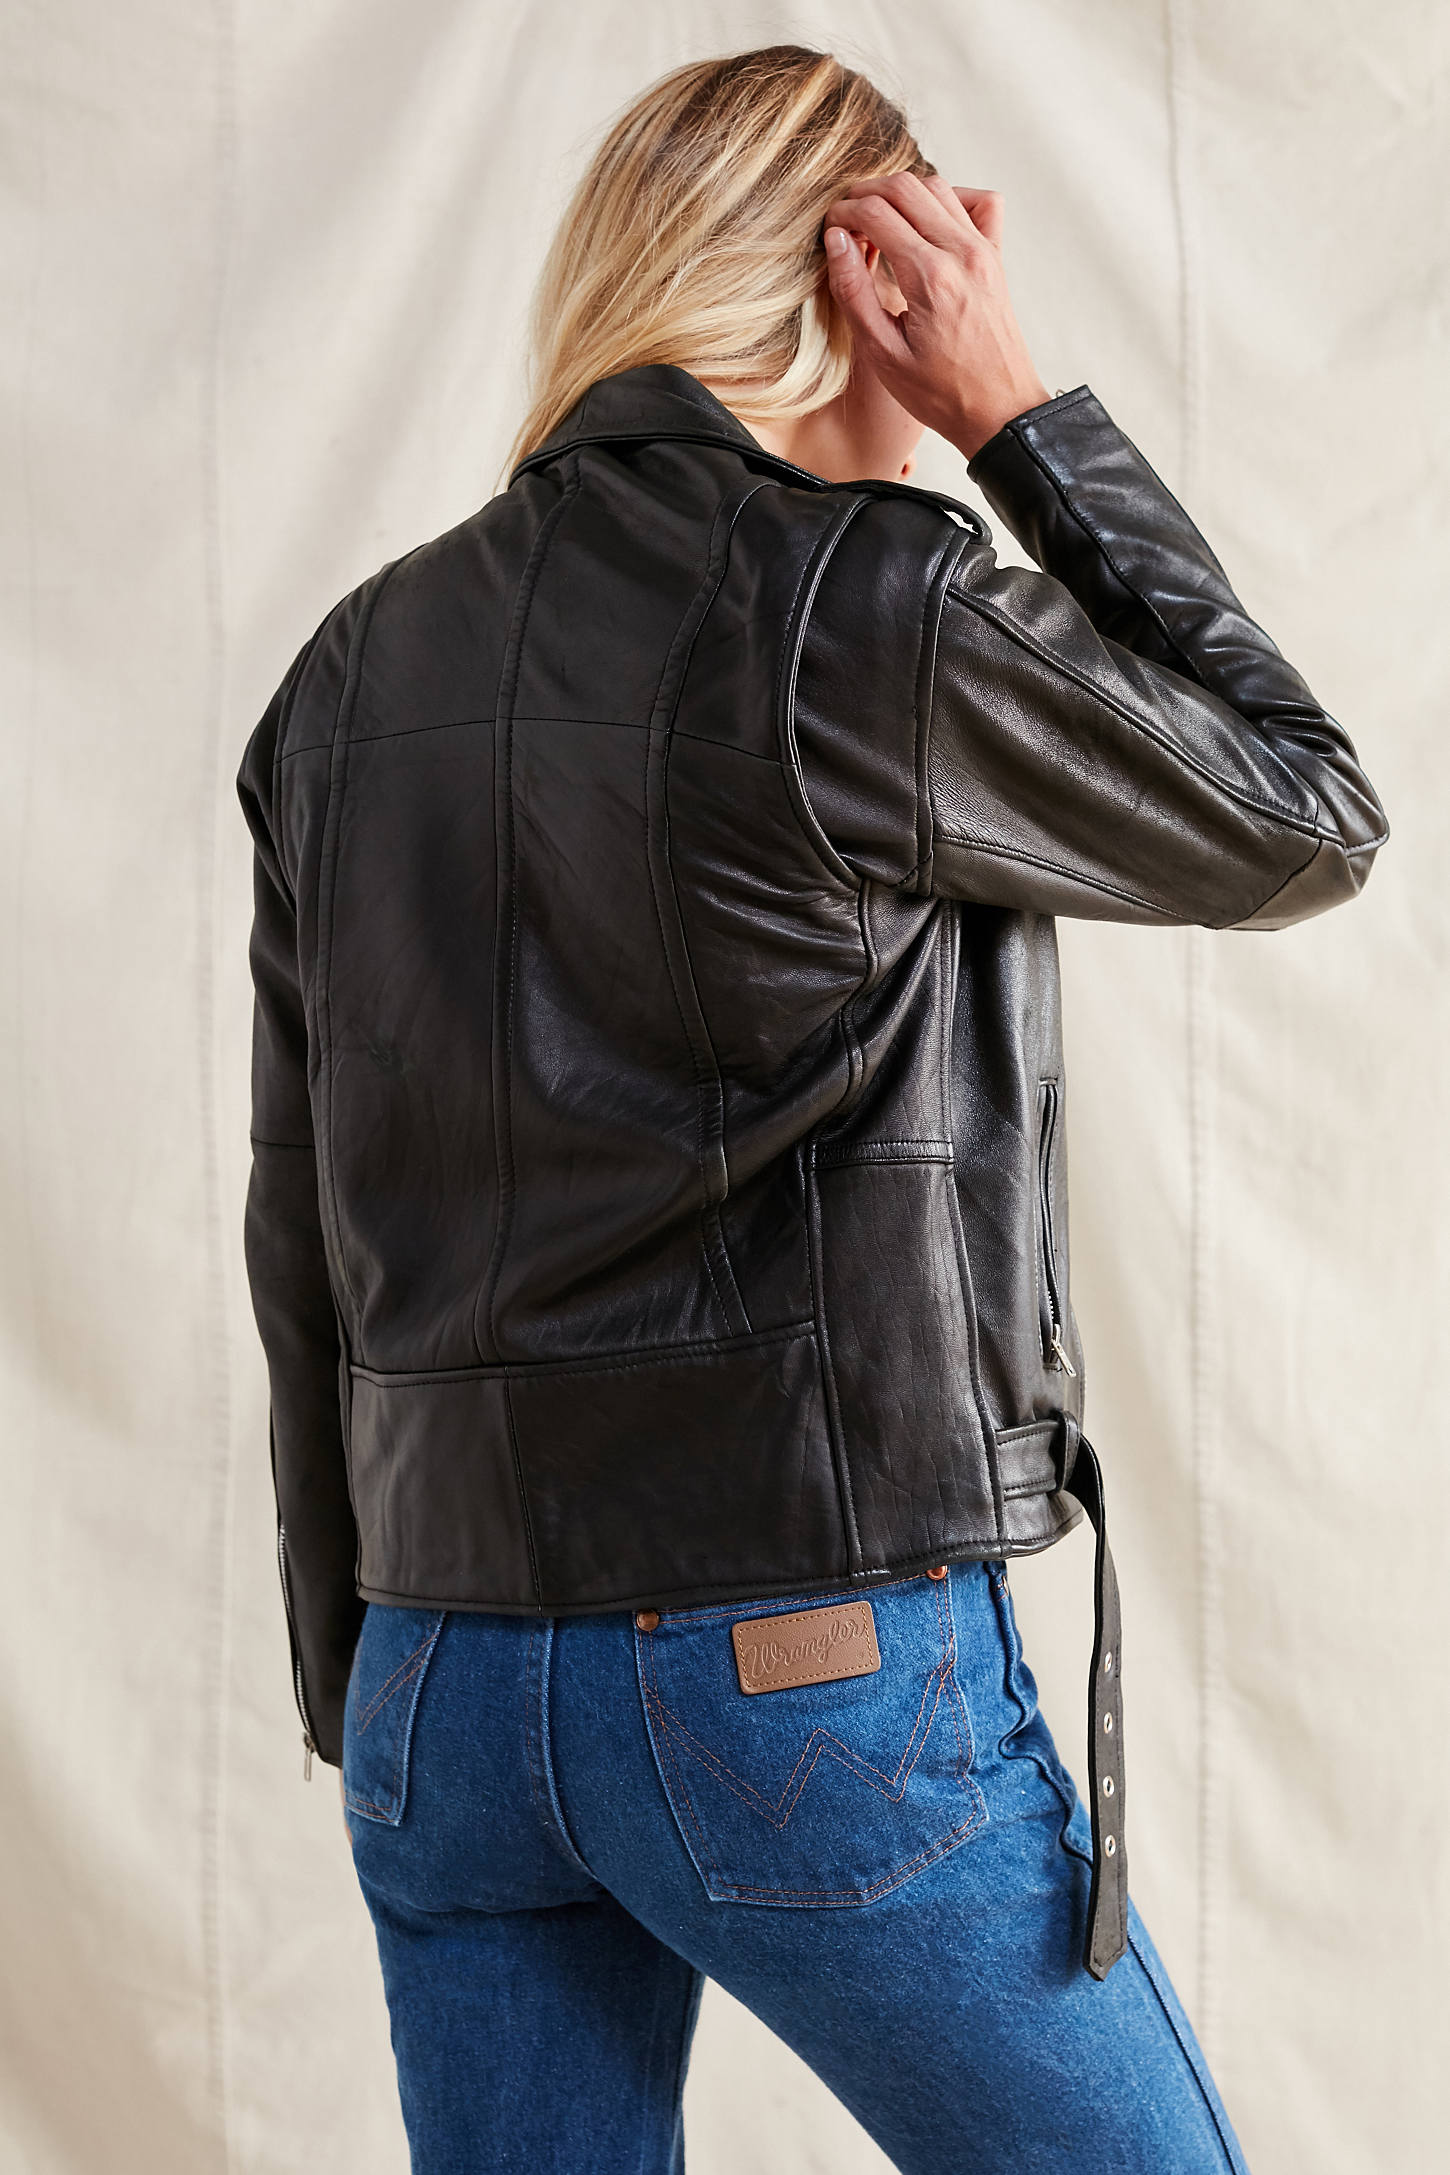 Leather jacket urban outfitters - Slide View 2 Pelechecoco Leather Moto Jacket